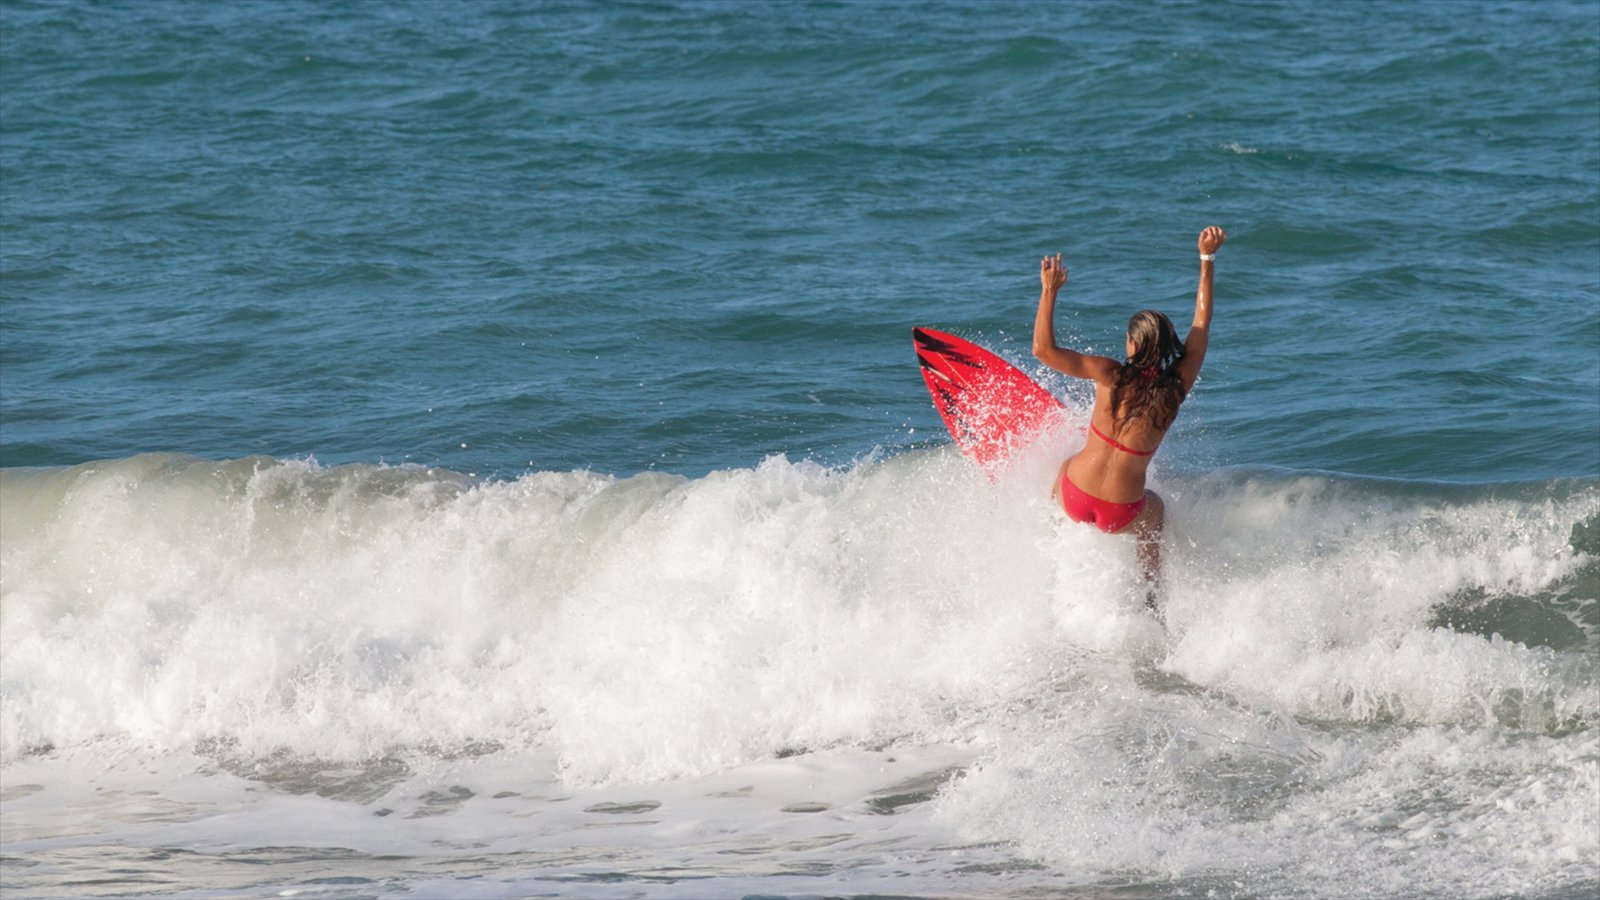 Vero Beach showing surfing and waves as well as an individual femail